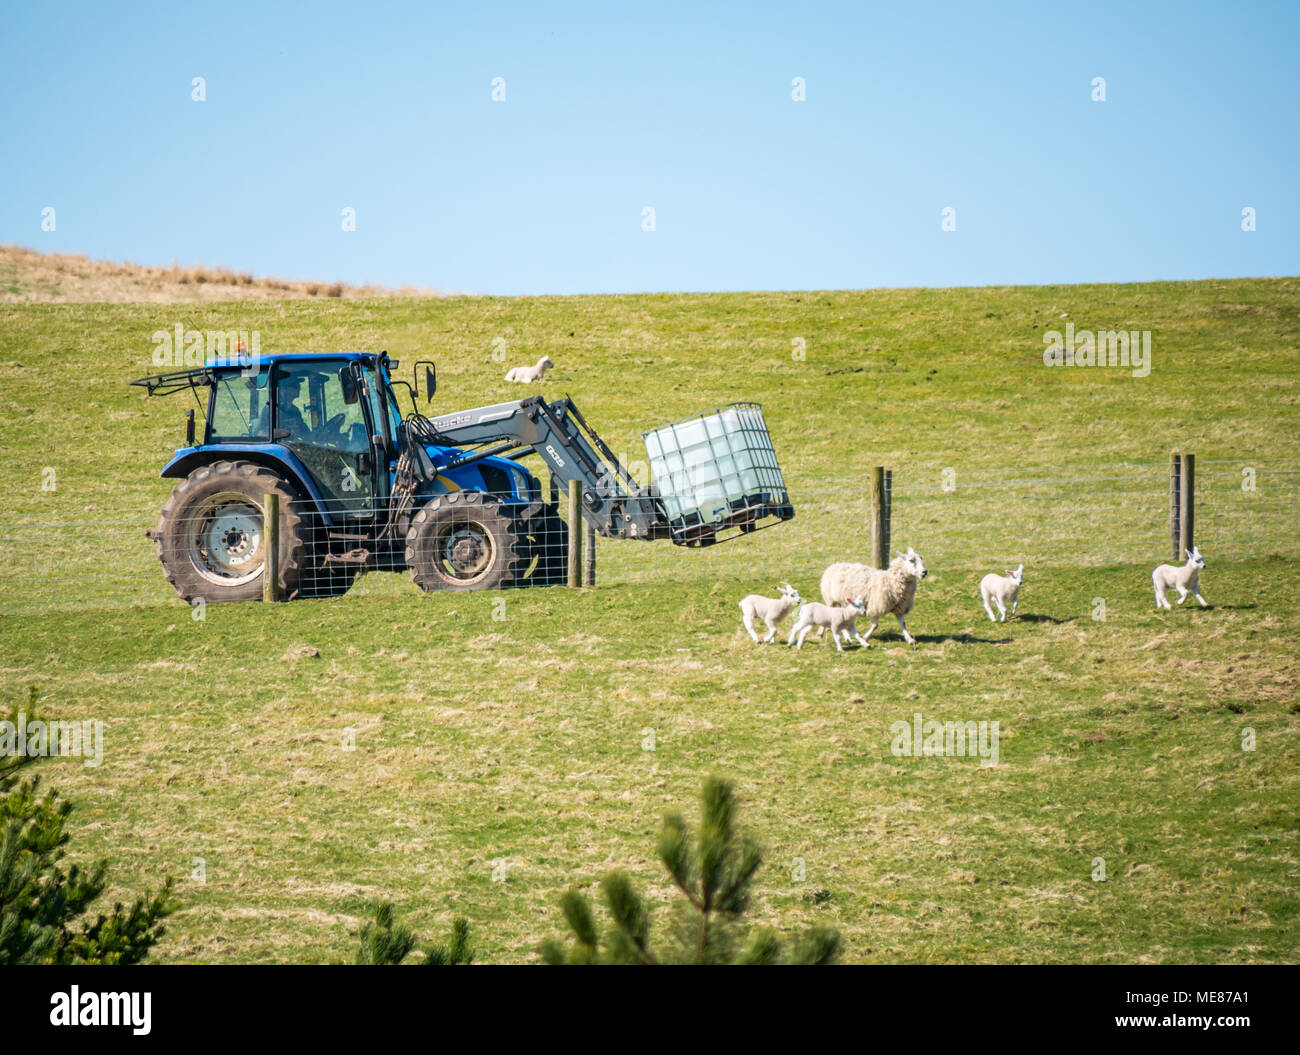 Tractor With Tanker : Tractor and water tank stock photos